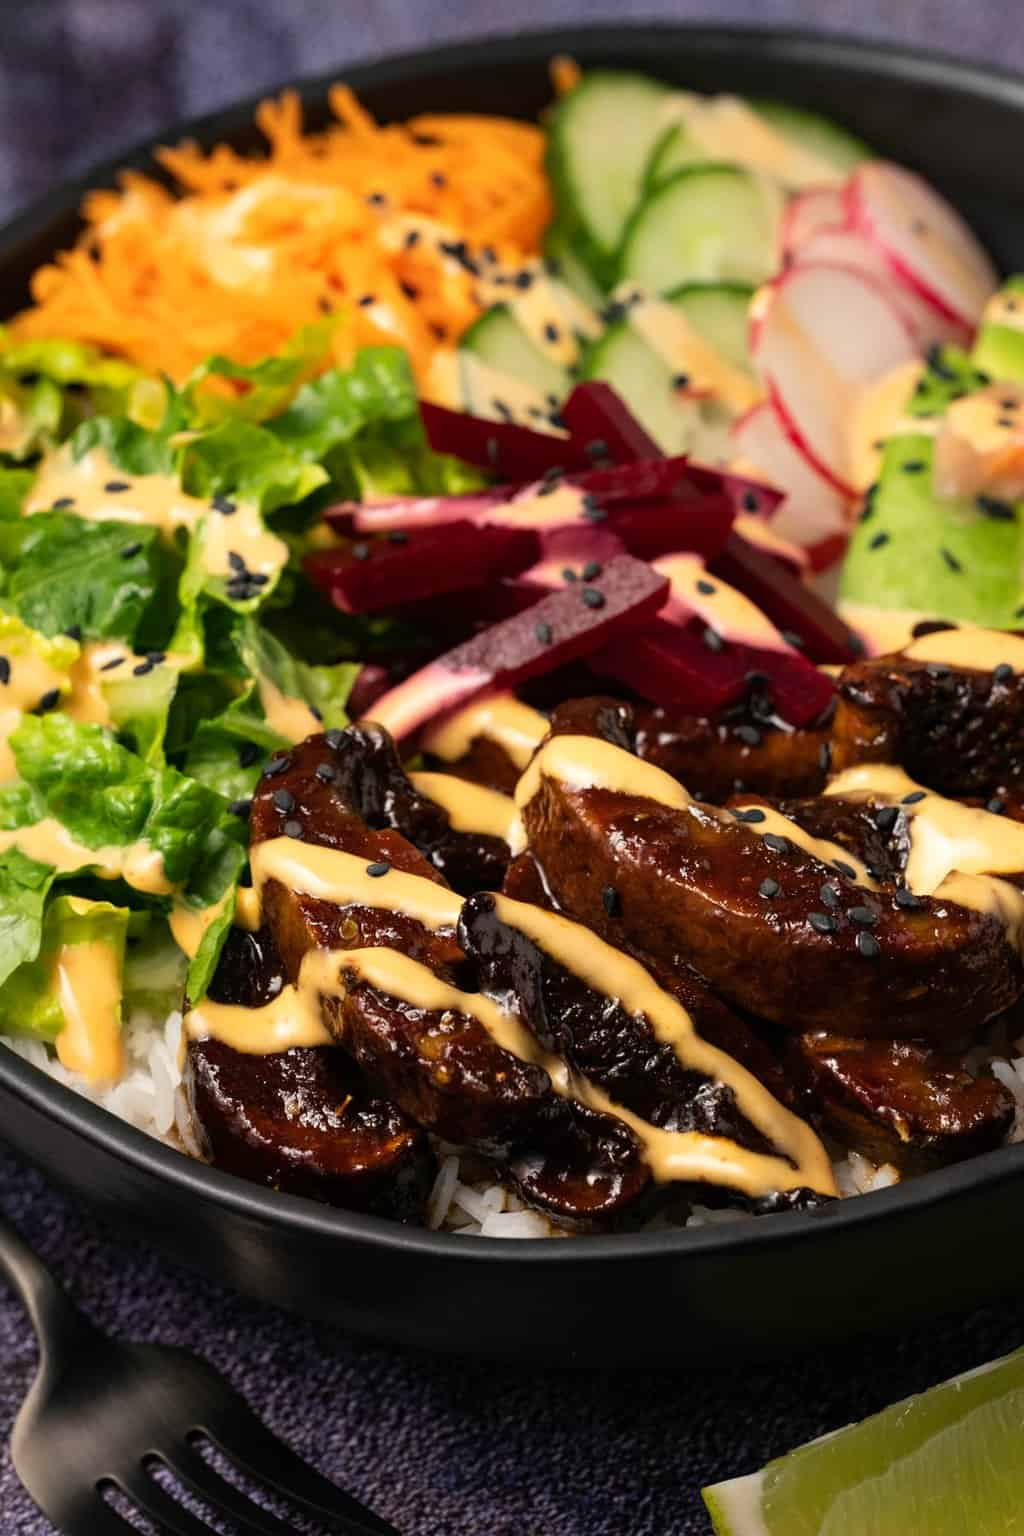 Black bowl filled with mushrooms, salad veggies and rice and drizzled with a creamy dressing.